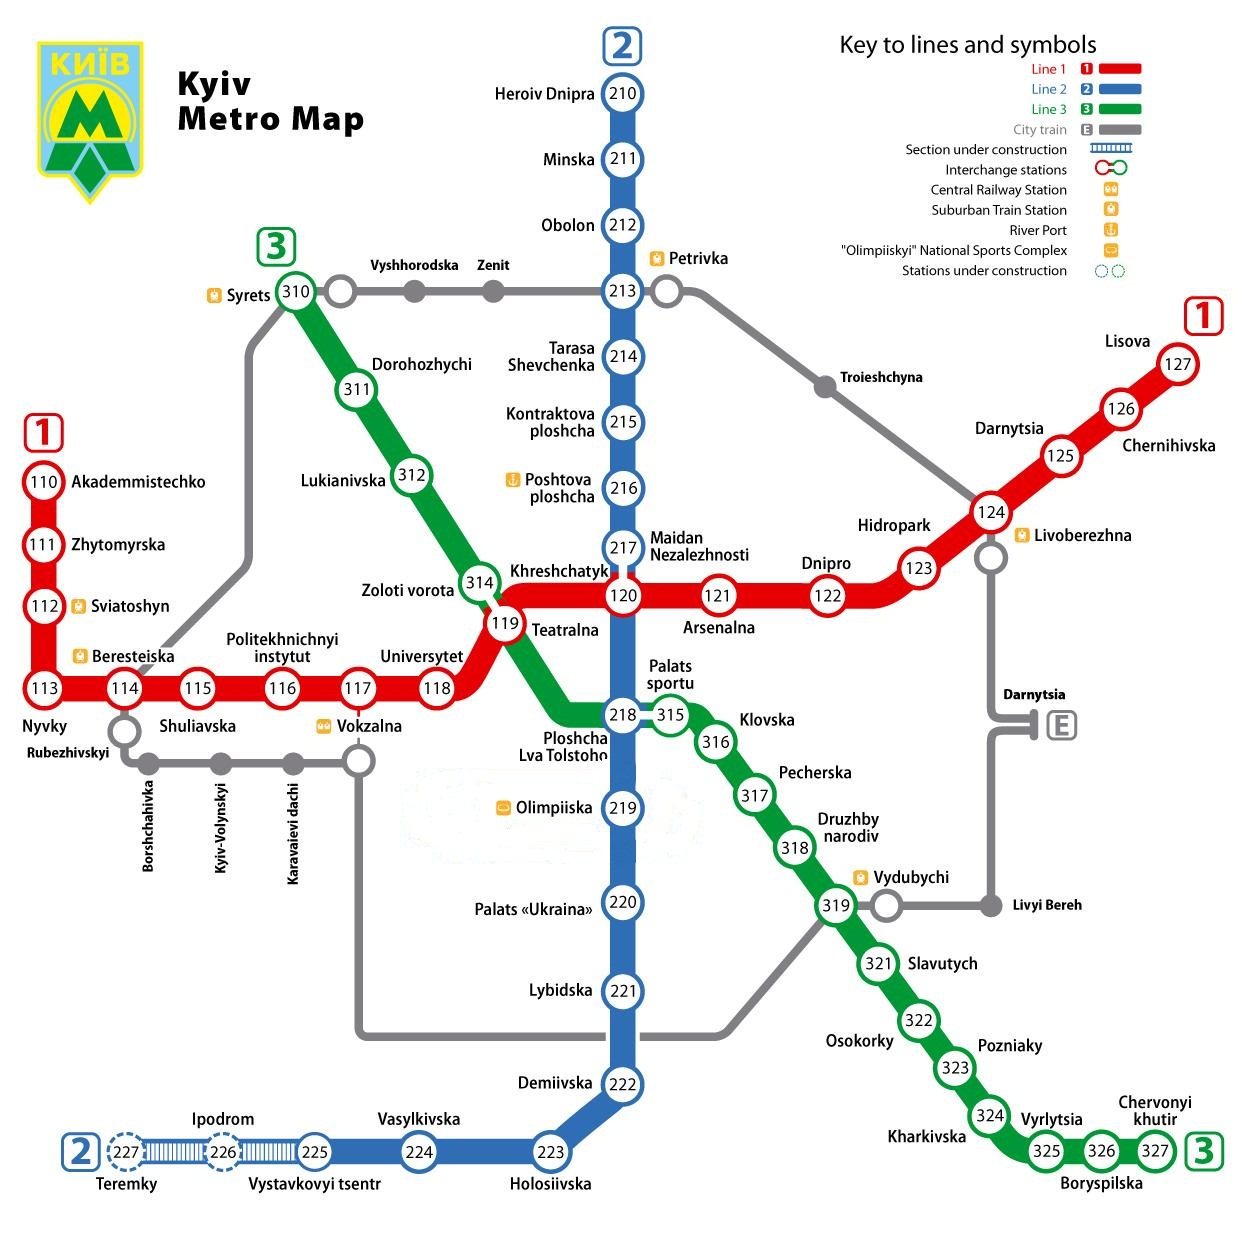 Kiev underground map | Concierge Group on brussels map, islamabad map, astana map, dnieper river, black sea map, chisinau map, constantinople map, minsk on map, russia map, volgograd map, crimea map, warsaw map, timbuktu map, ukraine map, caucasus mountains map, kyiv map, st. petersburg map, leningrad map, saint petersburg, moscow map, kievan rus map, jerusalem map,